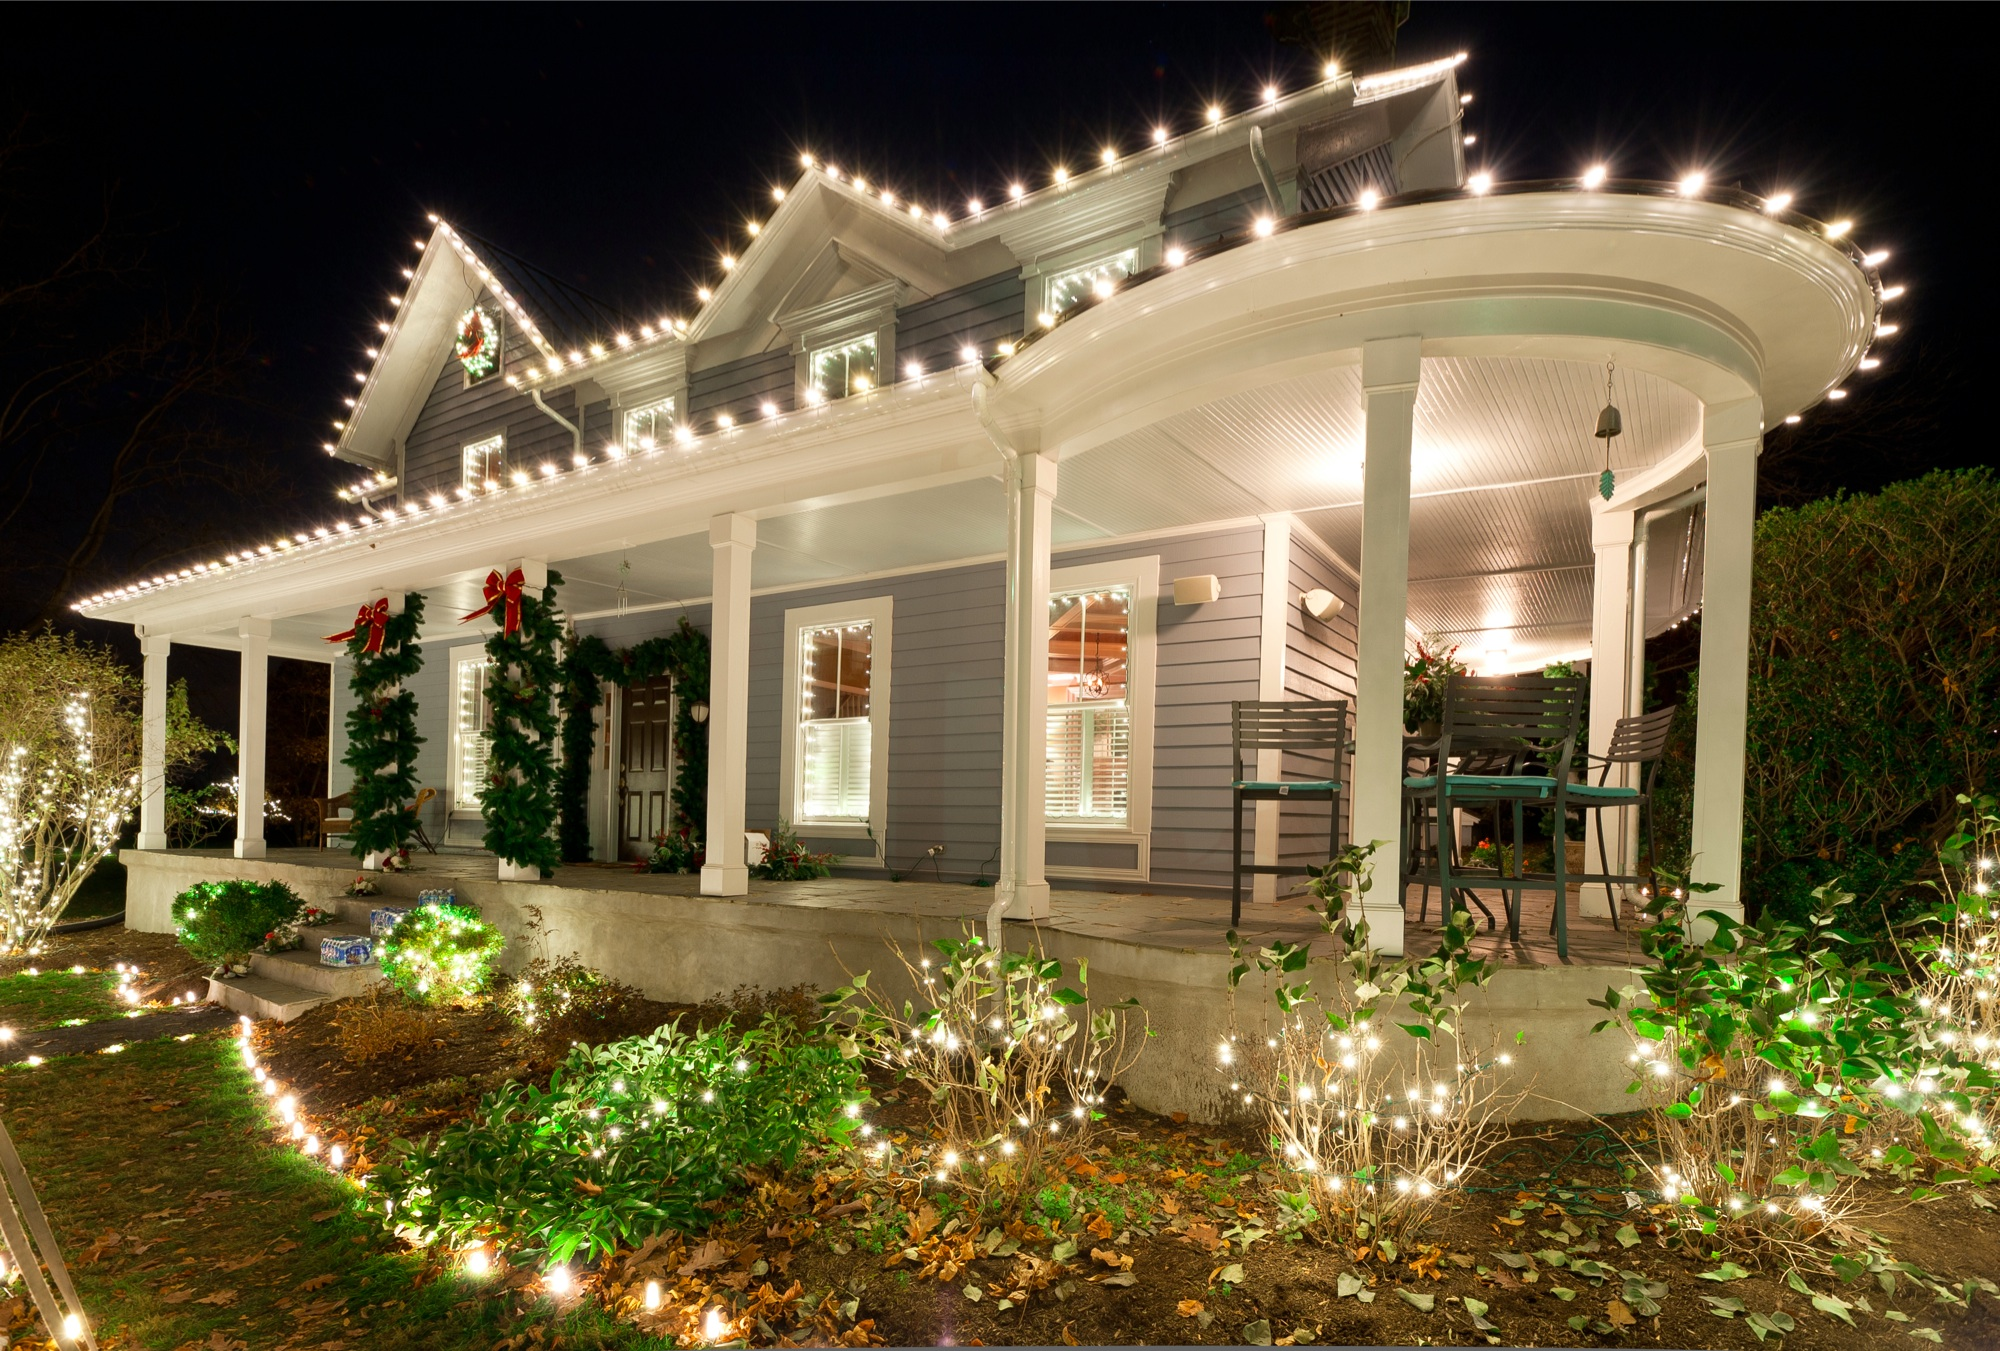 Fantastic Lighting Trends For Your Homes Exterior 78209 Magazine Largest Home Design Picture Inspirations Pitcheantrous